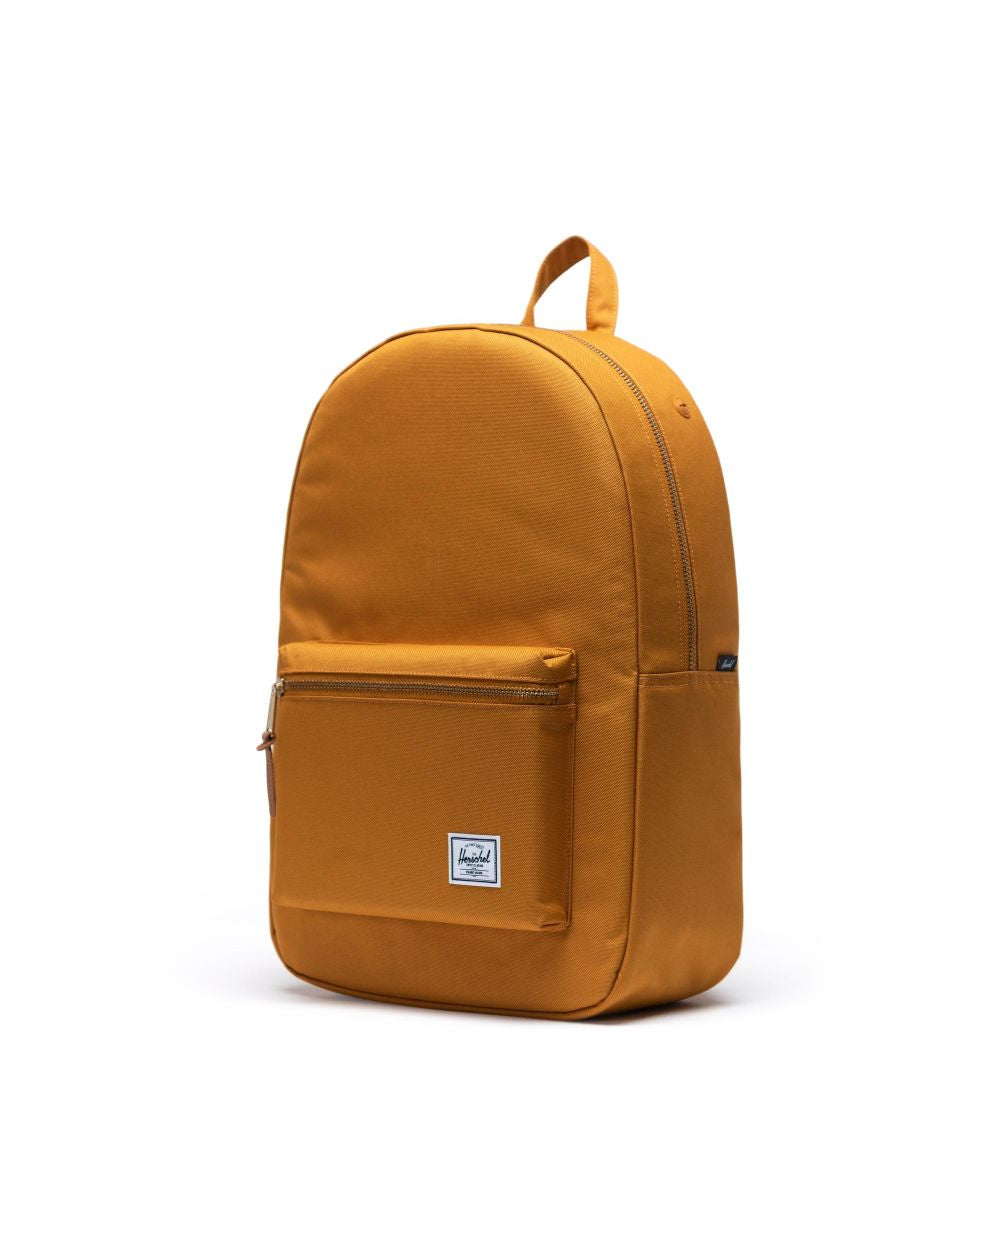 SETTLEMENT BACKPACK - BUCKTHORN BROWN